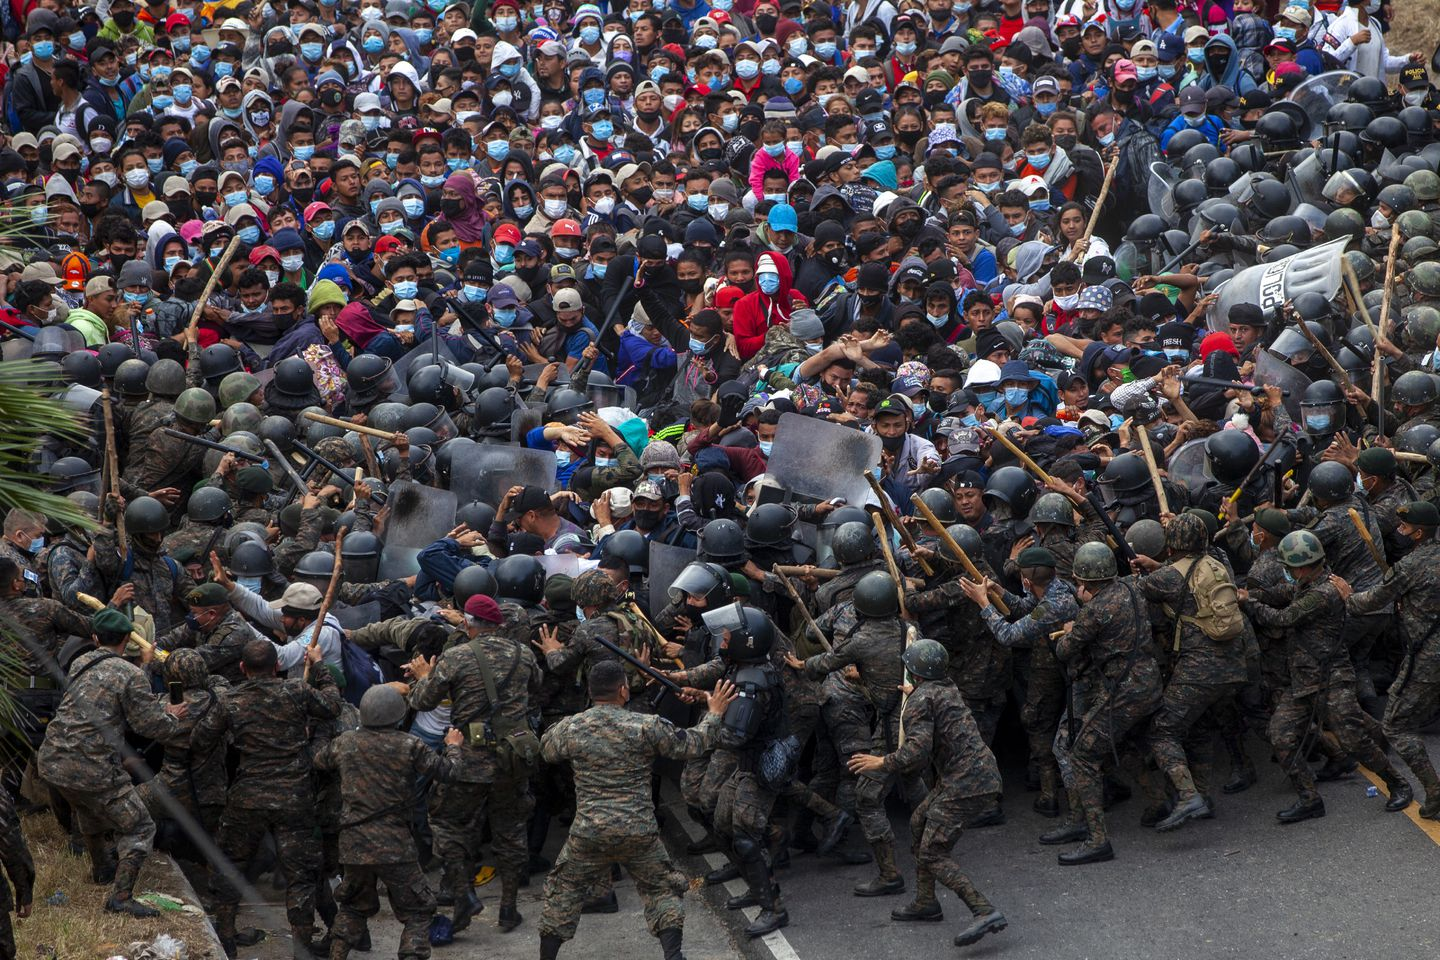 Honduran migrants clash with Guatemalan soldiers in Vado Hondo, Guatemala, Jan. 17. Guatemalan authorities estimated that as many as 9,000 Honduran migrants crossed into Guatemala as part of an effort to form a new caravan to reach the US border.